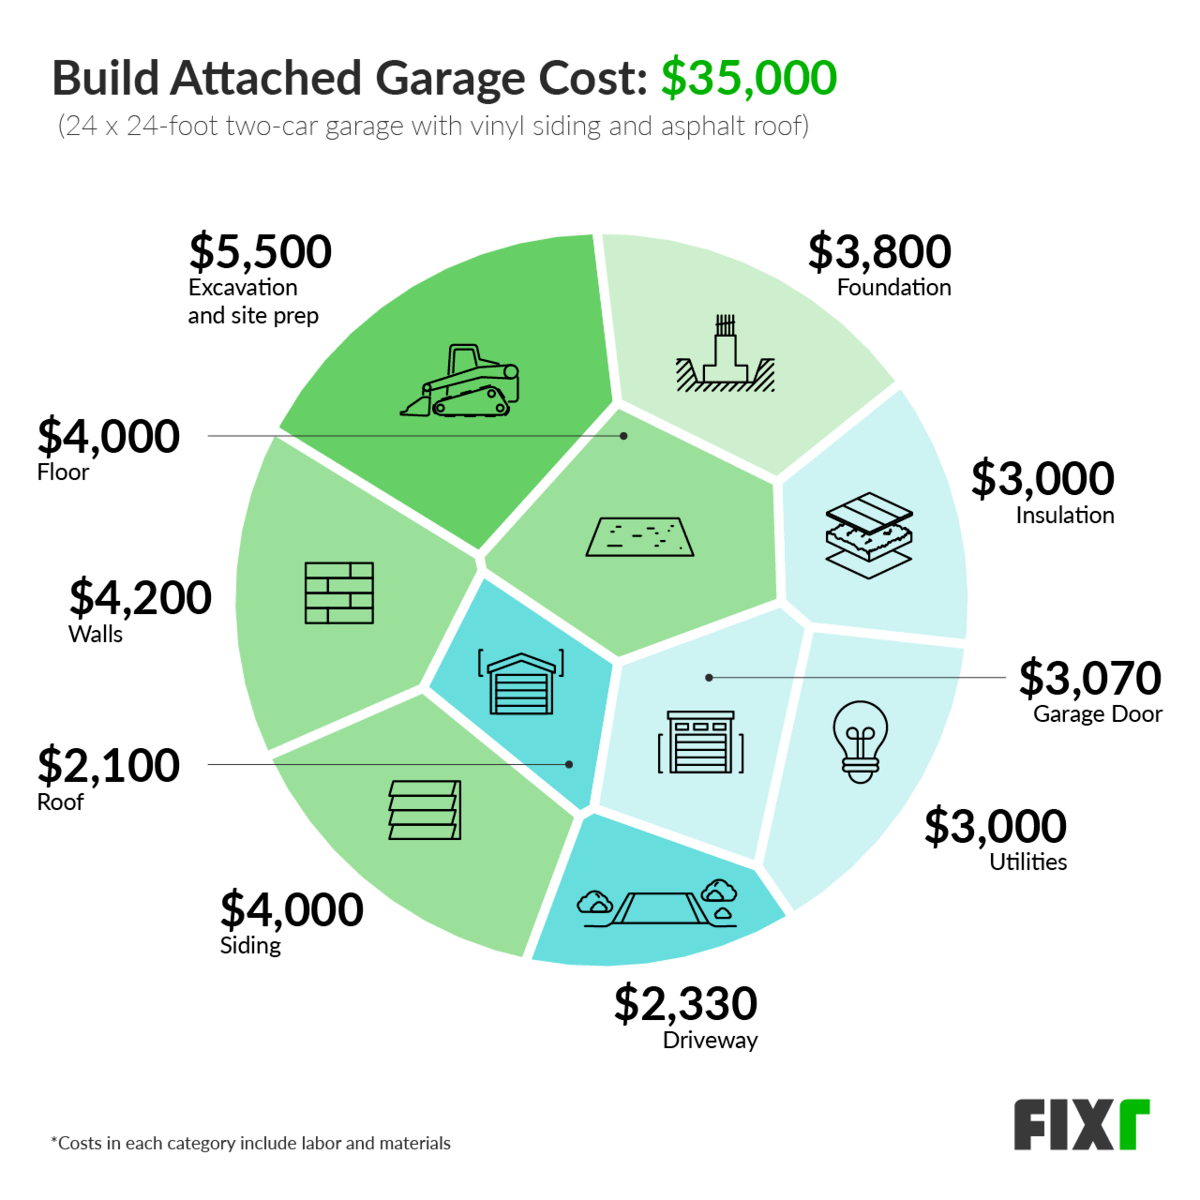 2021 Cost To Build Attached Garage Adding An Attached Garage To A House